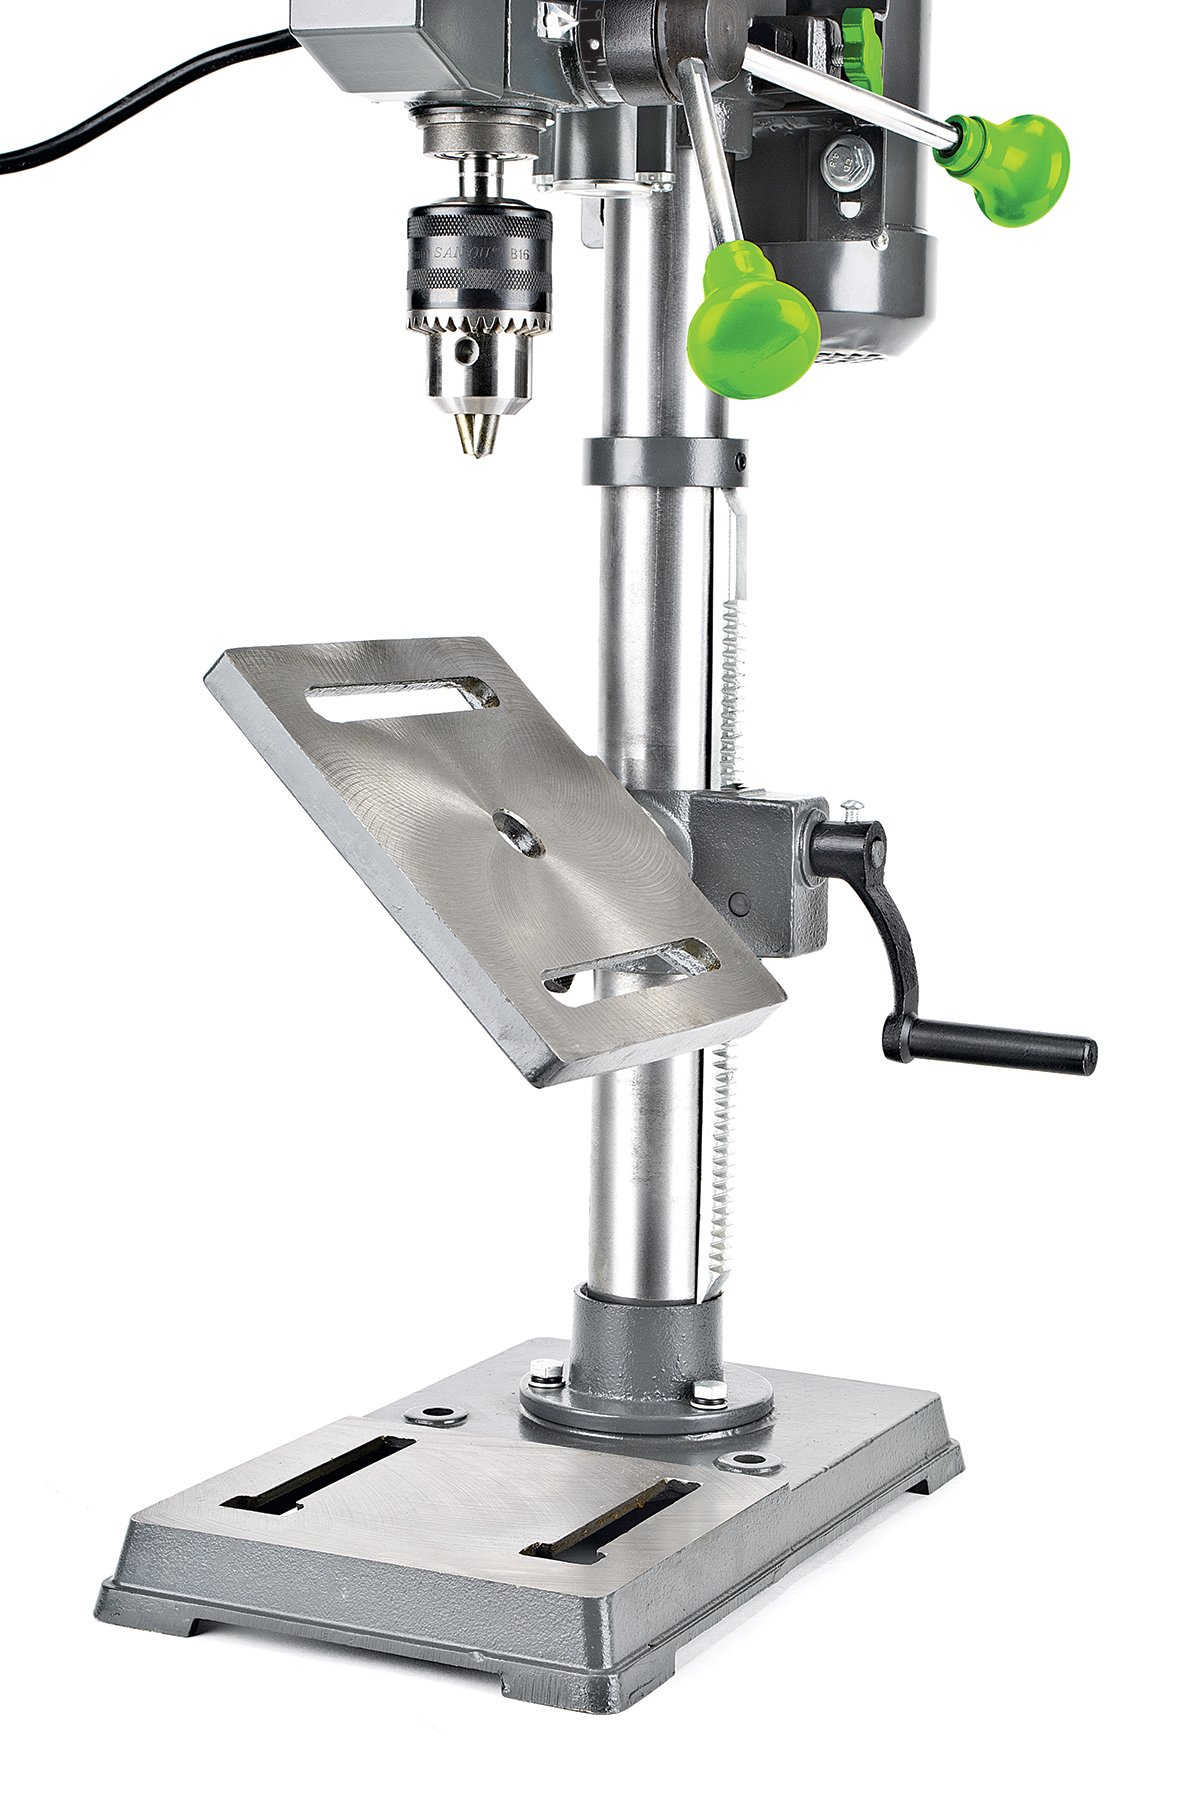 Genesis GDP1005A 10'' 5-Speed 4.1 Amp Drill Press with 5/8'' Chuck, with Integrated work light and Table that Rotates and Tilts by Genesis (Image #4)